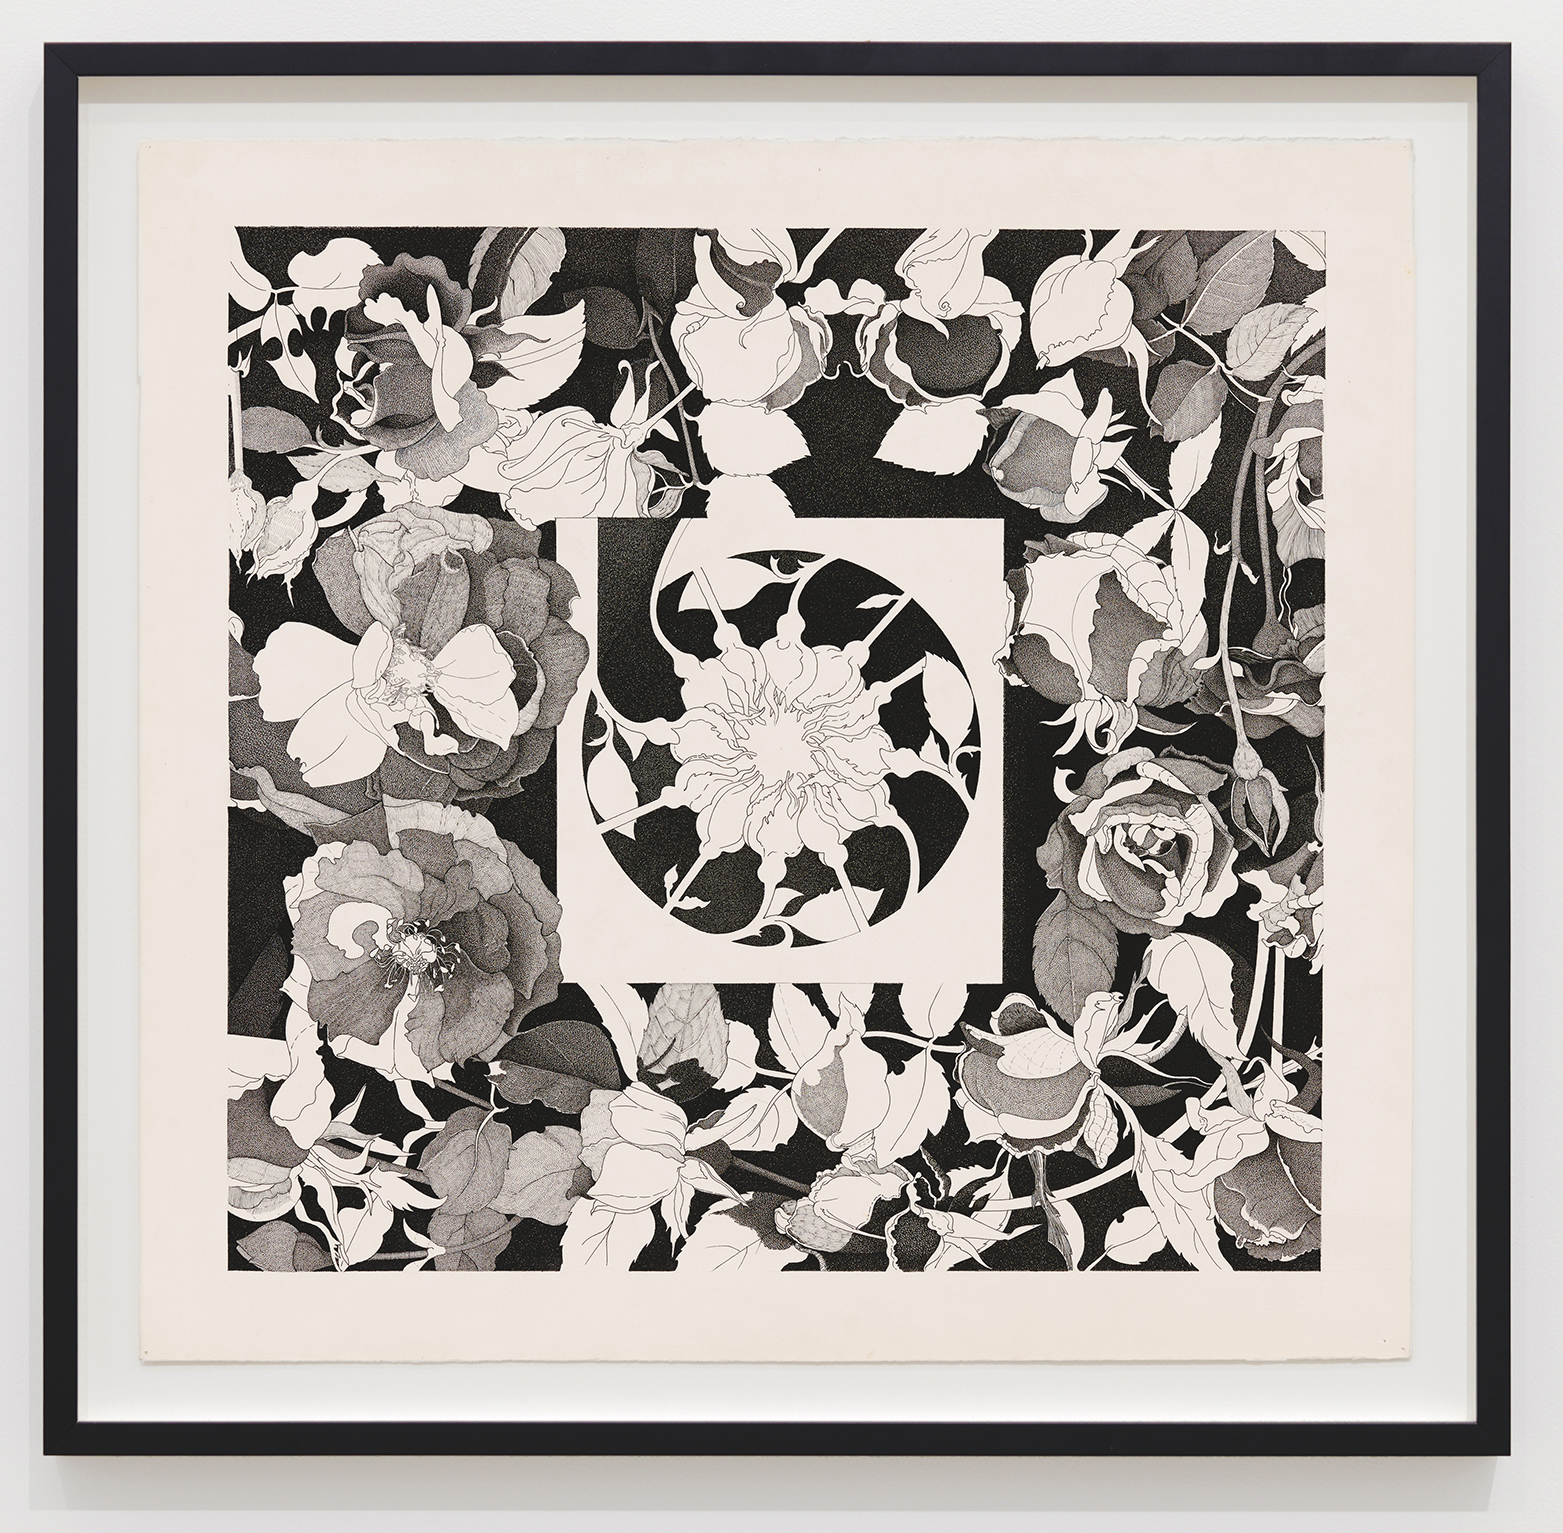 Charmian Johnson, not titled, c. 1978–80, ink on paper, 25 x 26 in. (64 x 67 cm) by